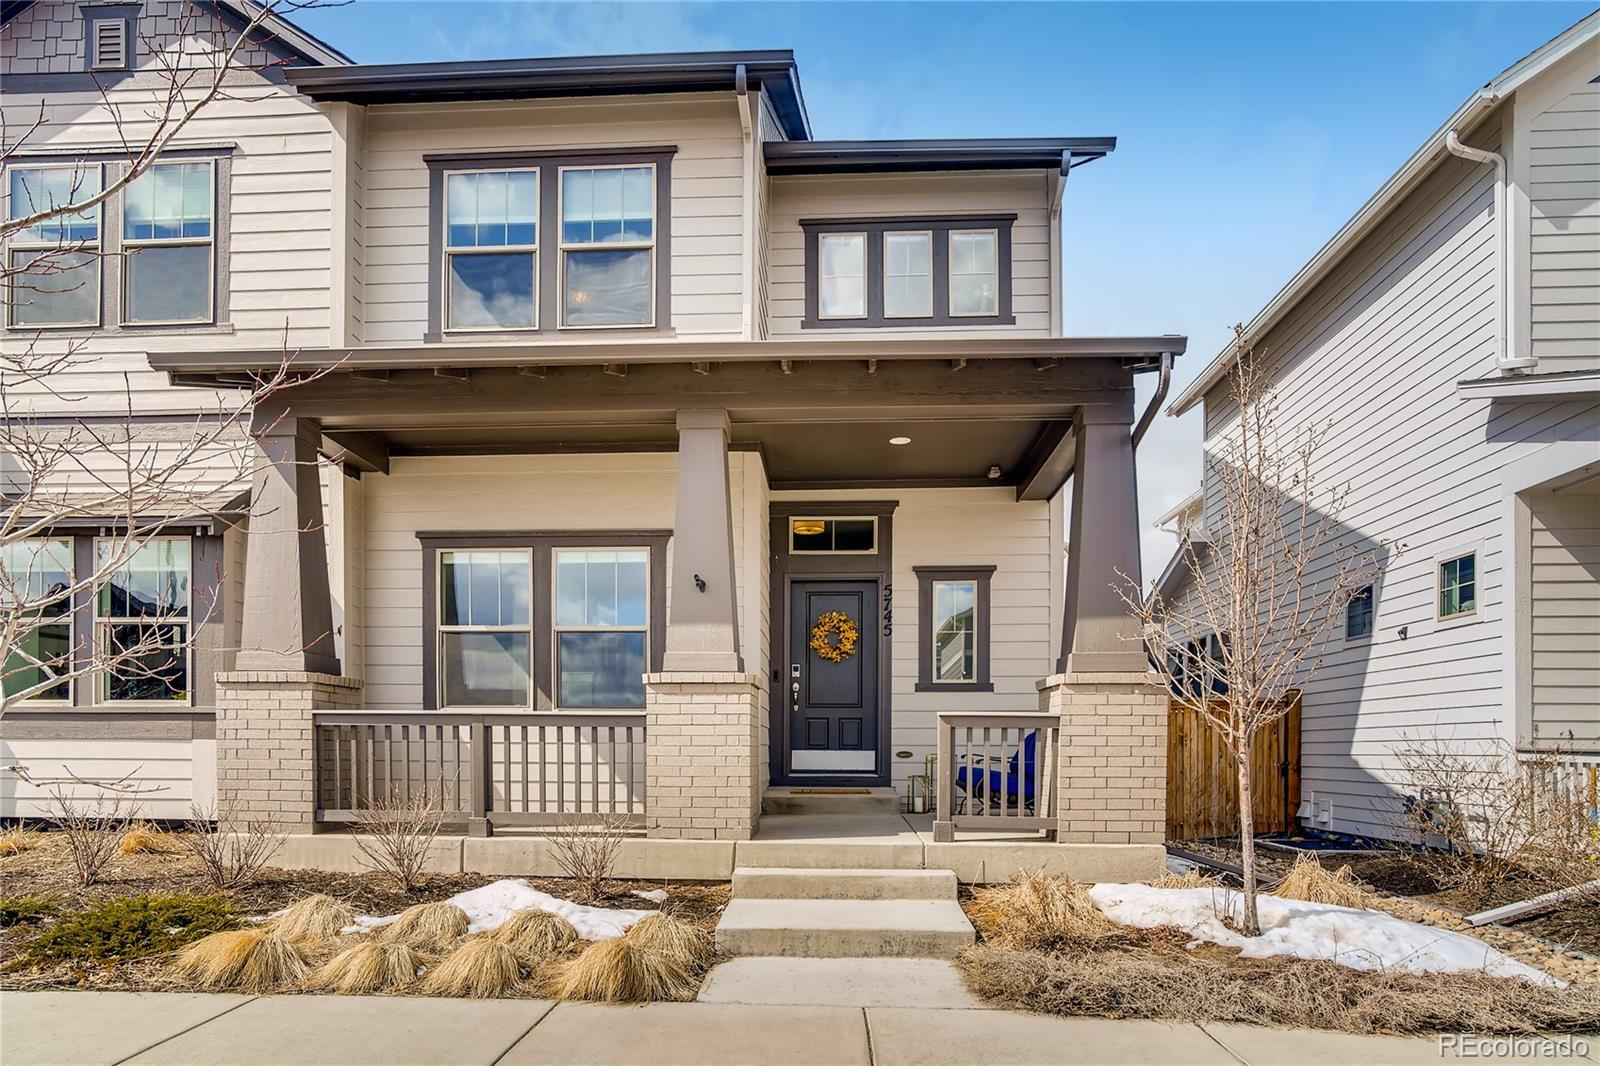 5745 Boston Street, Denver, CO 80238 - #: 5418688